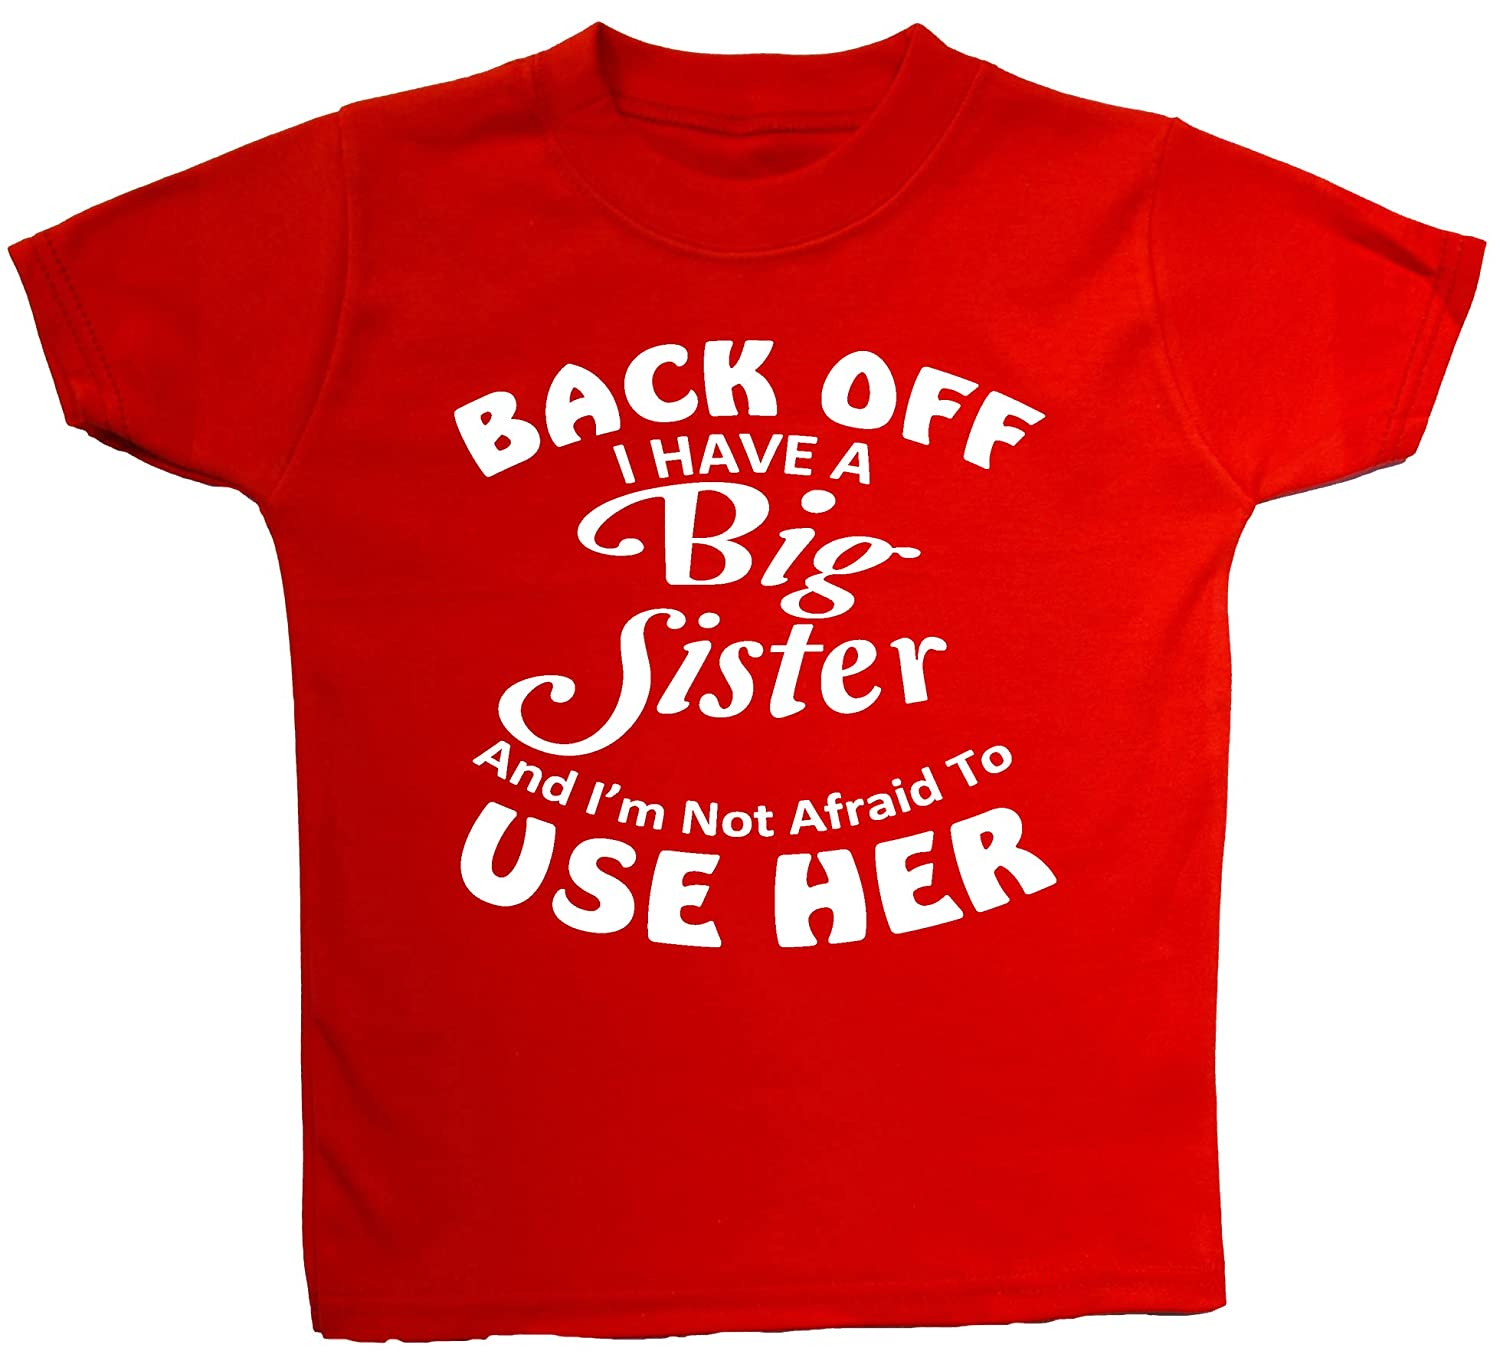 Back Off I Have a Big Sister & I'm Not Afraid to Use Her Baby/Children T-Shirt/Tops 0 to 5 Years